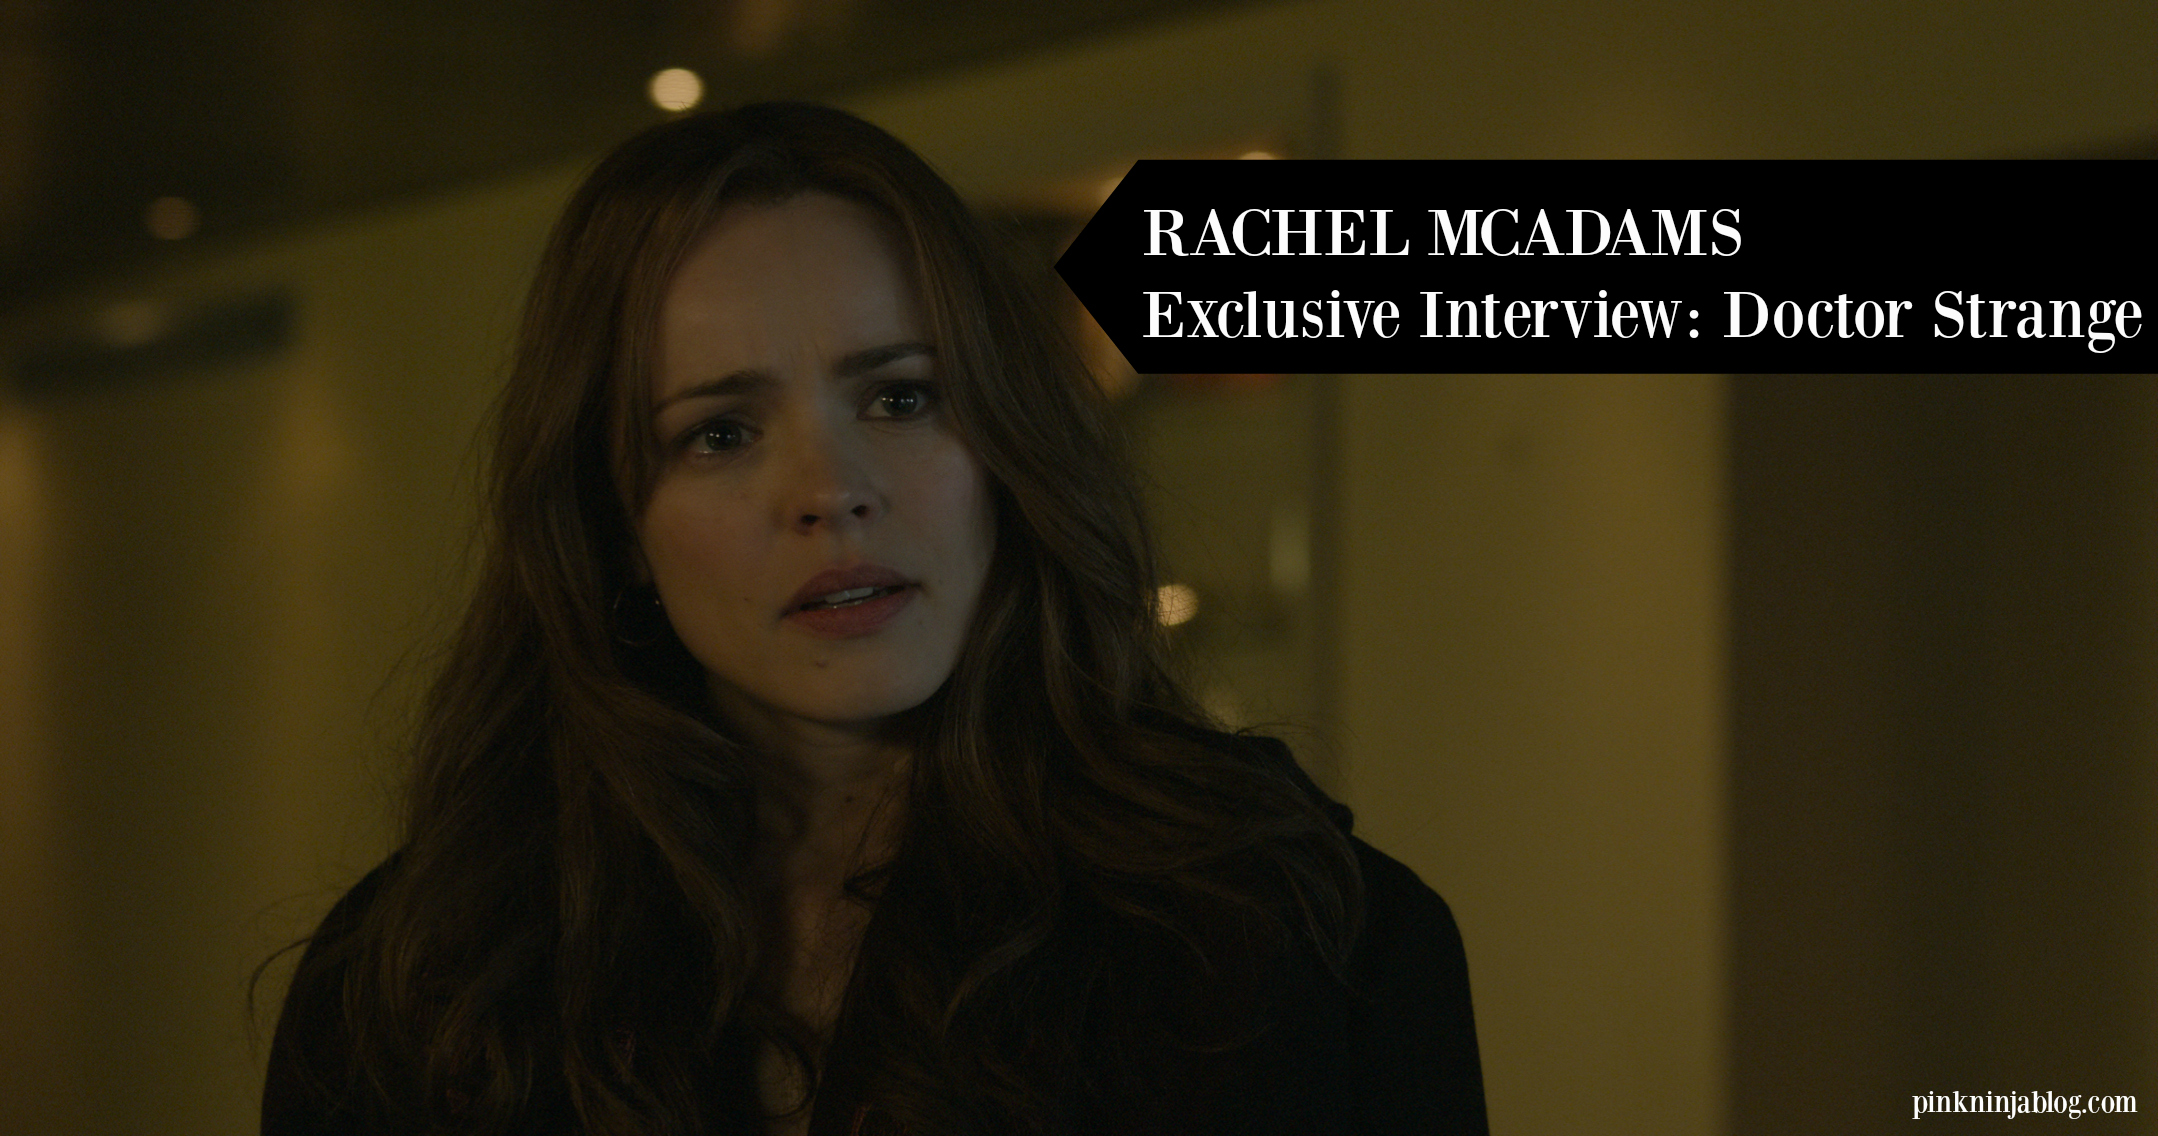 RACHEL MCADAMS ~ Exclusive Interview: Doctor Strange